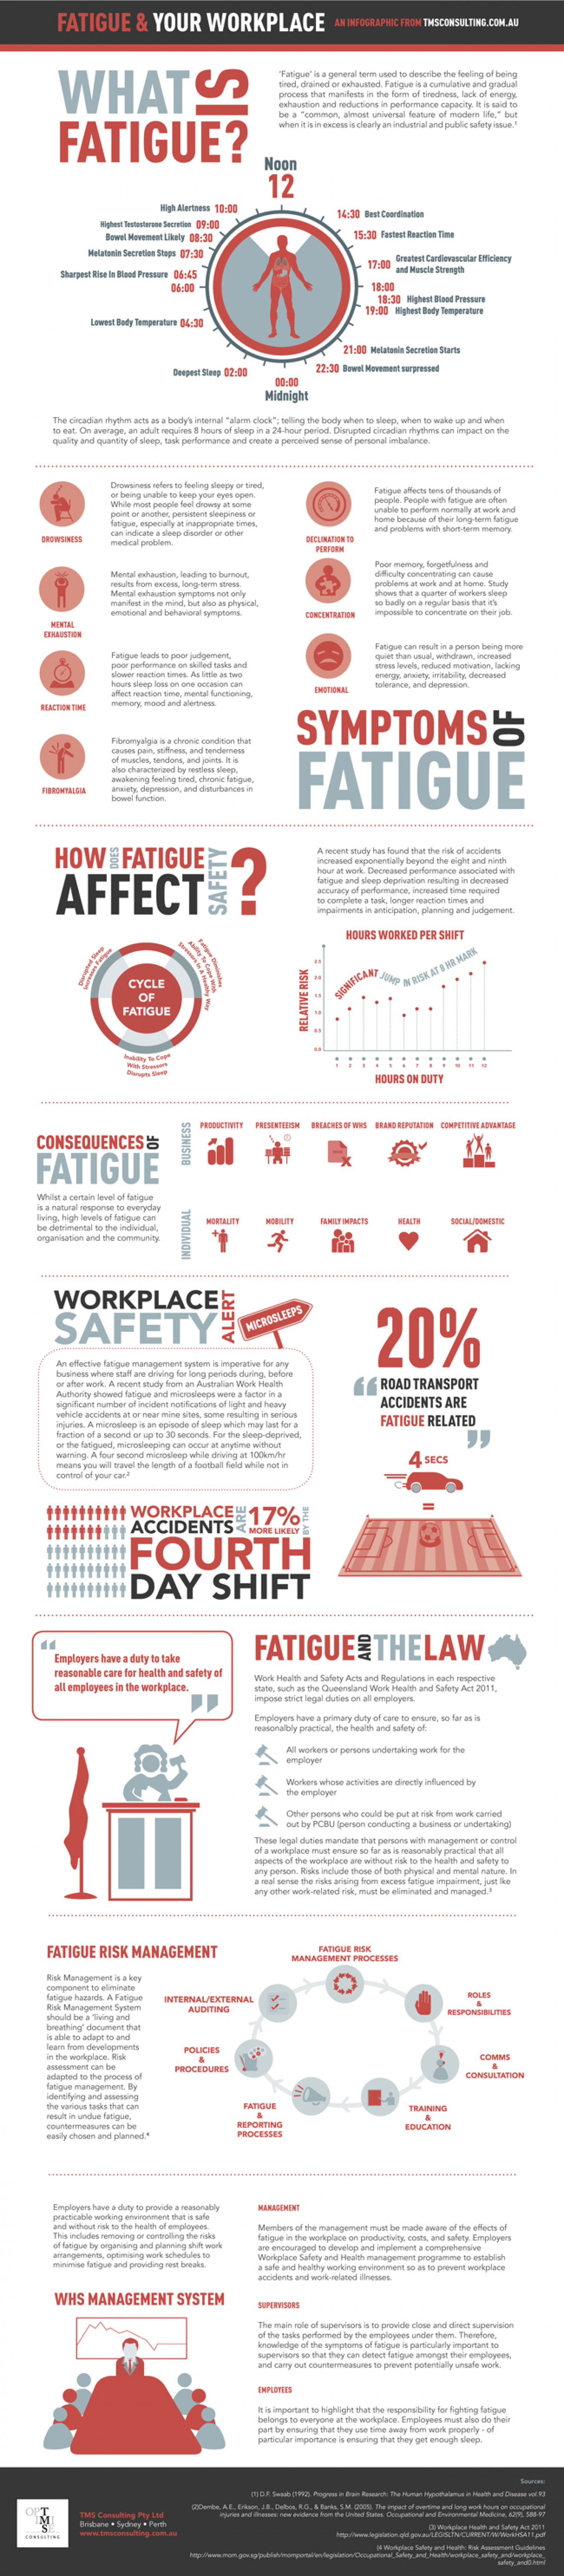 Fatigue and Your Workplace: A new infographic from TMS Consulting Infographic